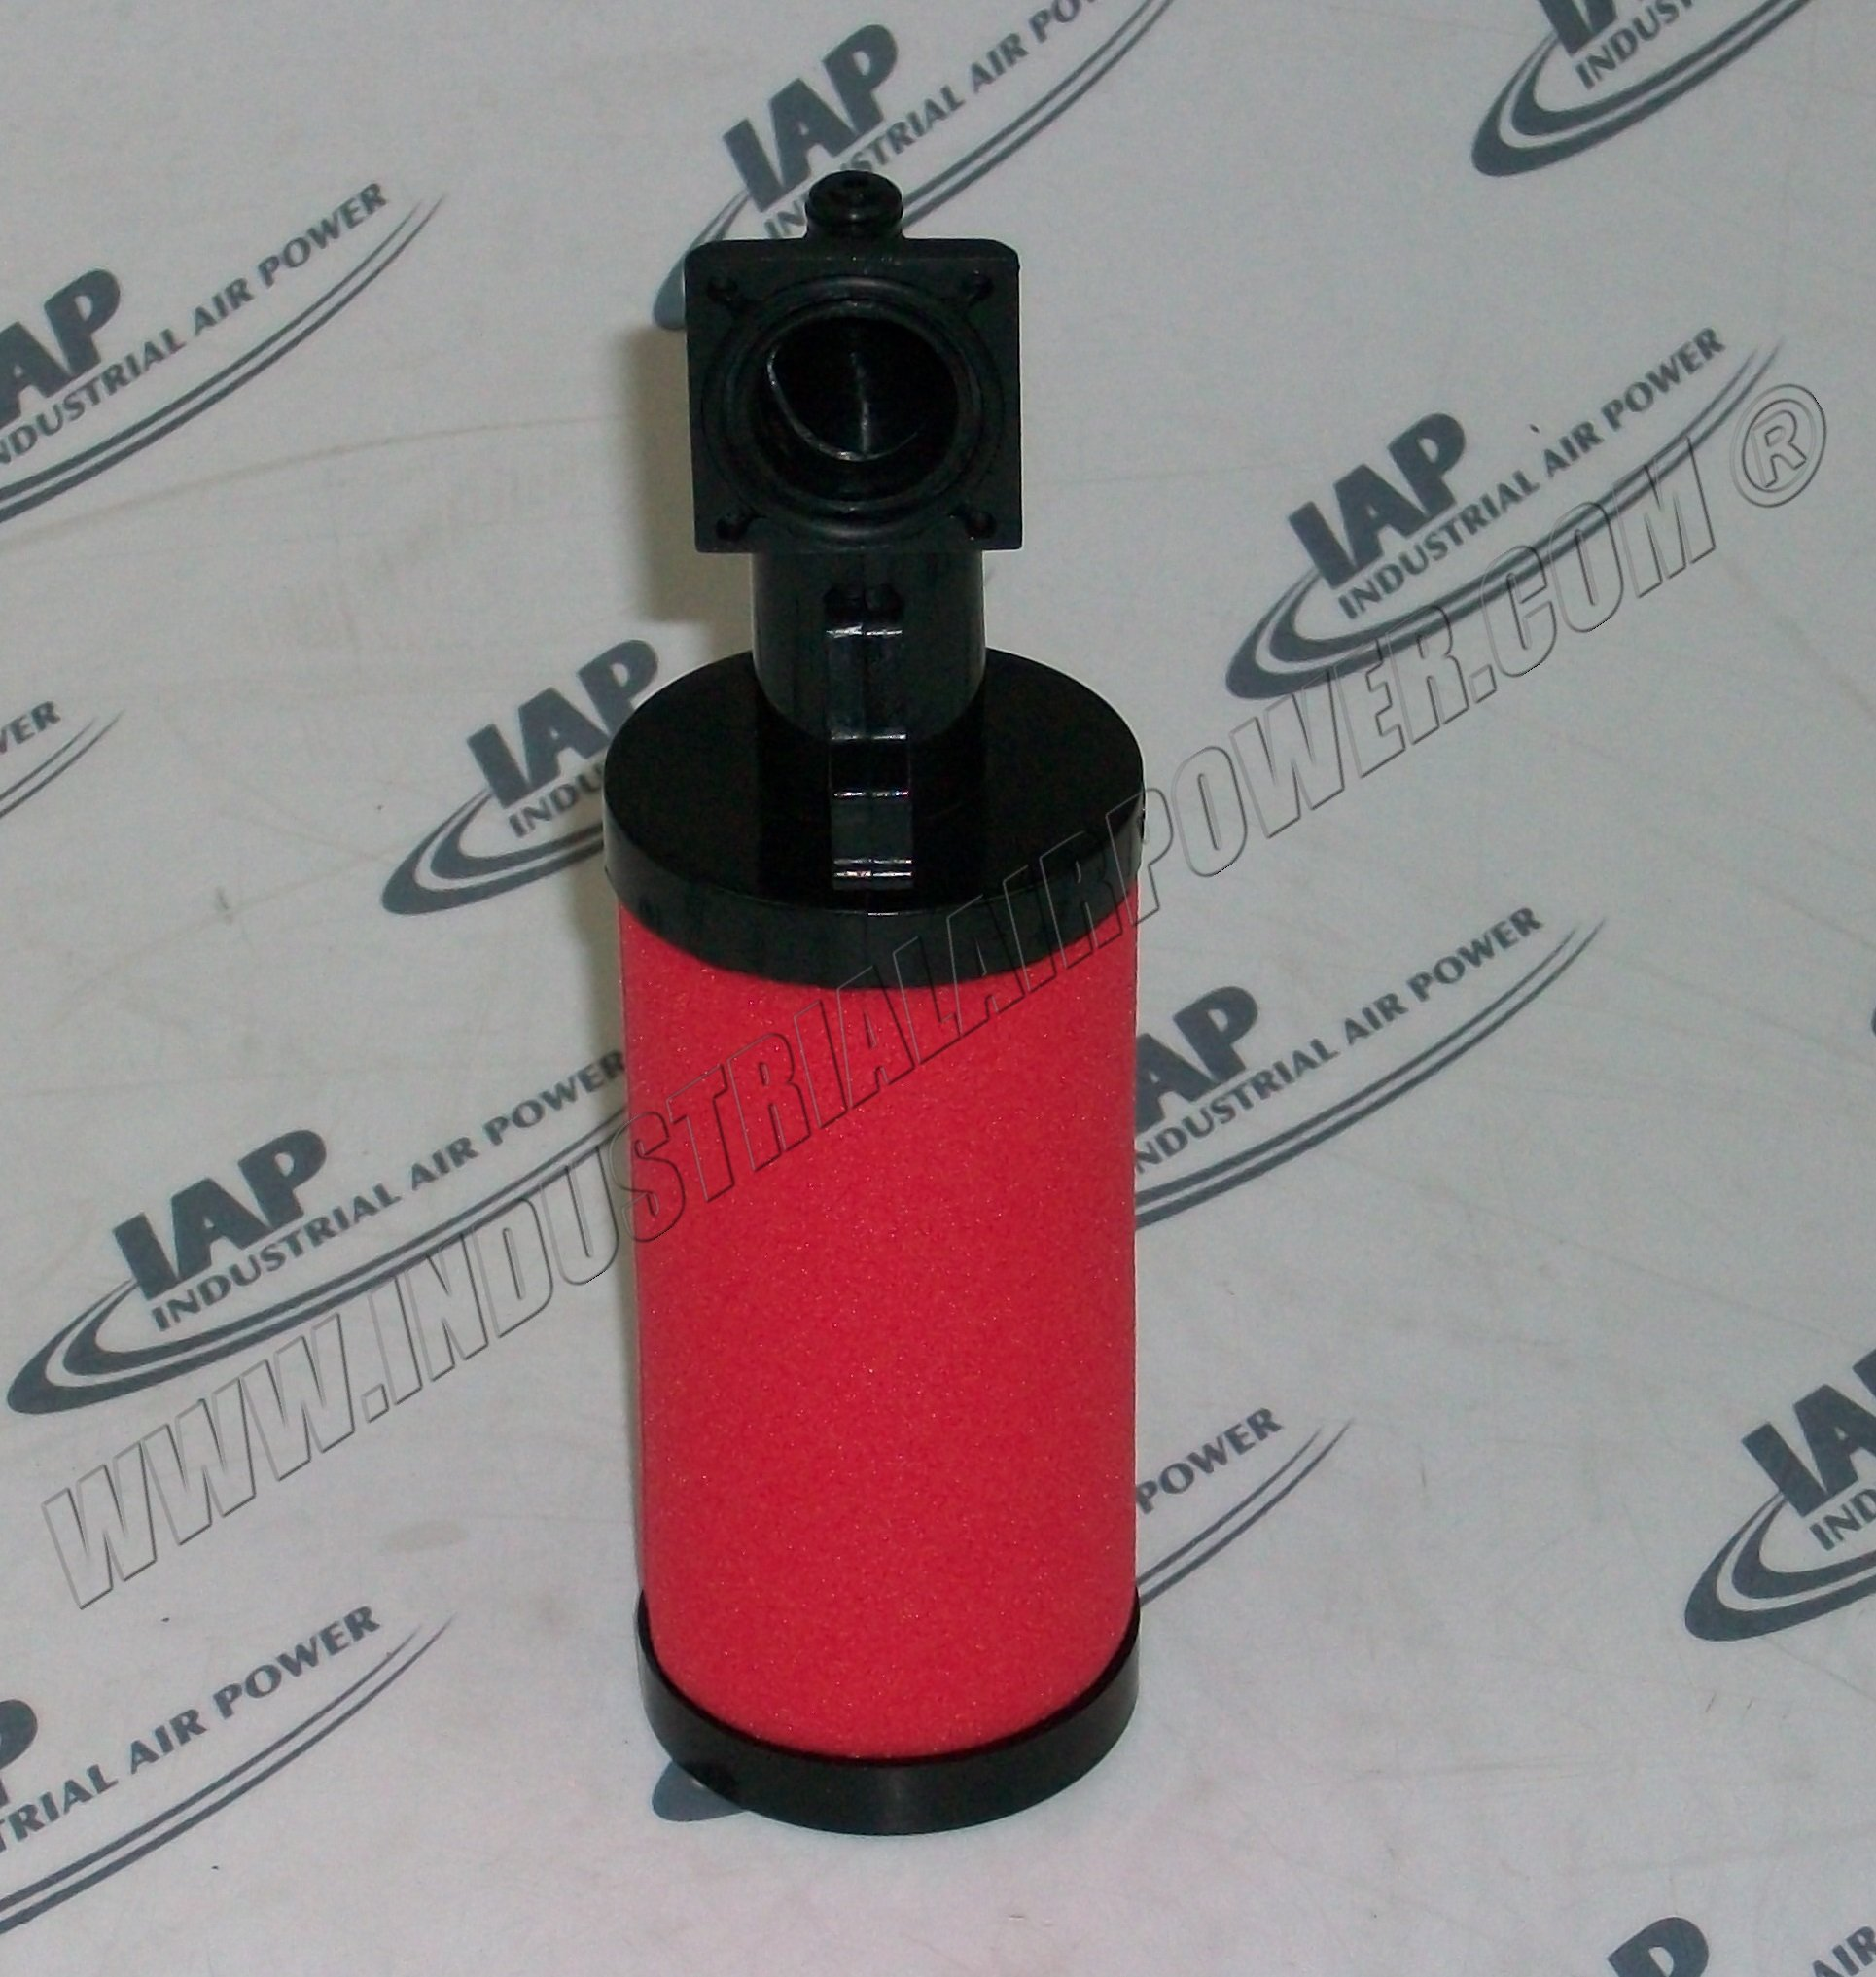 88343025 Filter Element Designed for use with Ingersoll Rand Compressors by Industrial Air Power